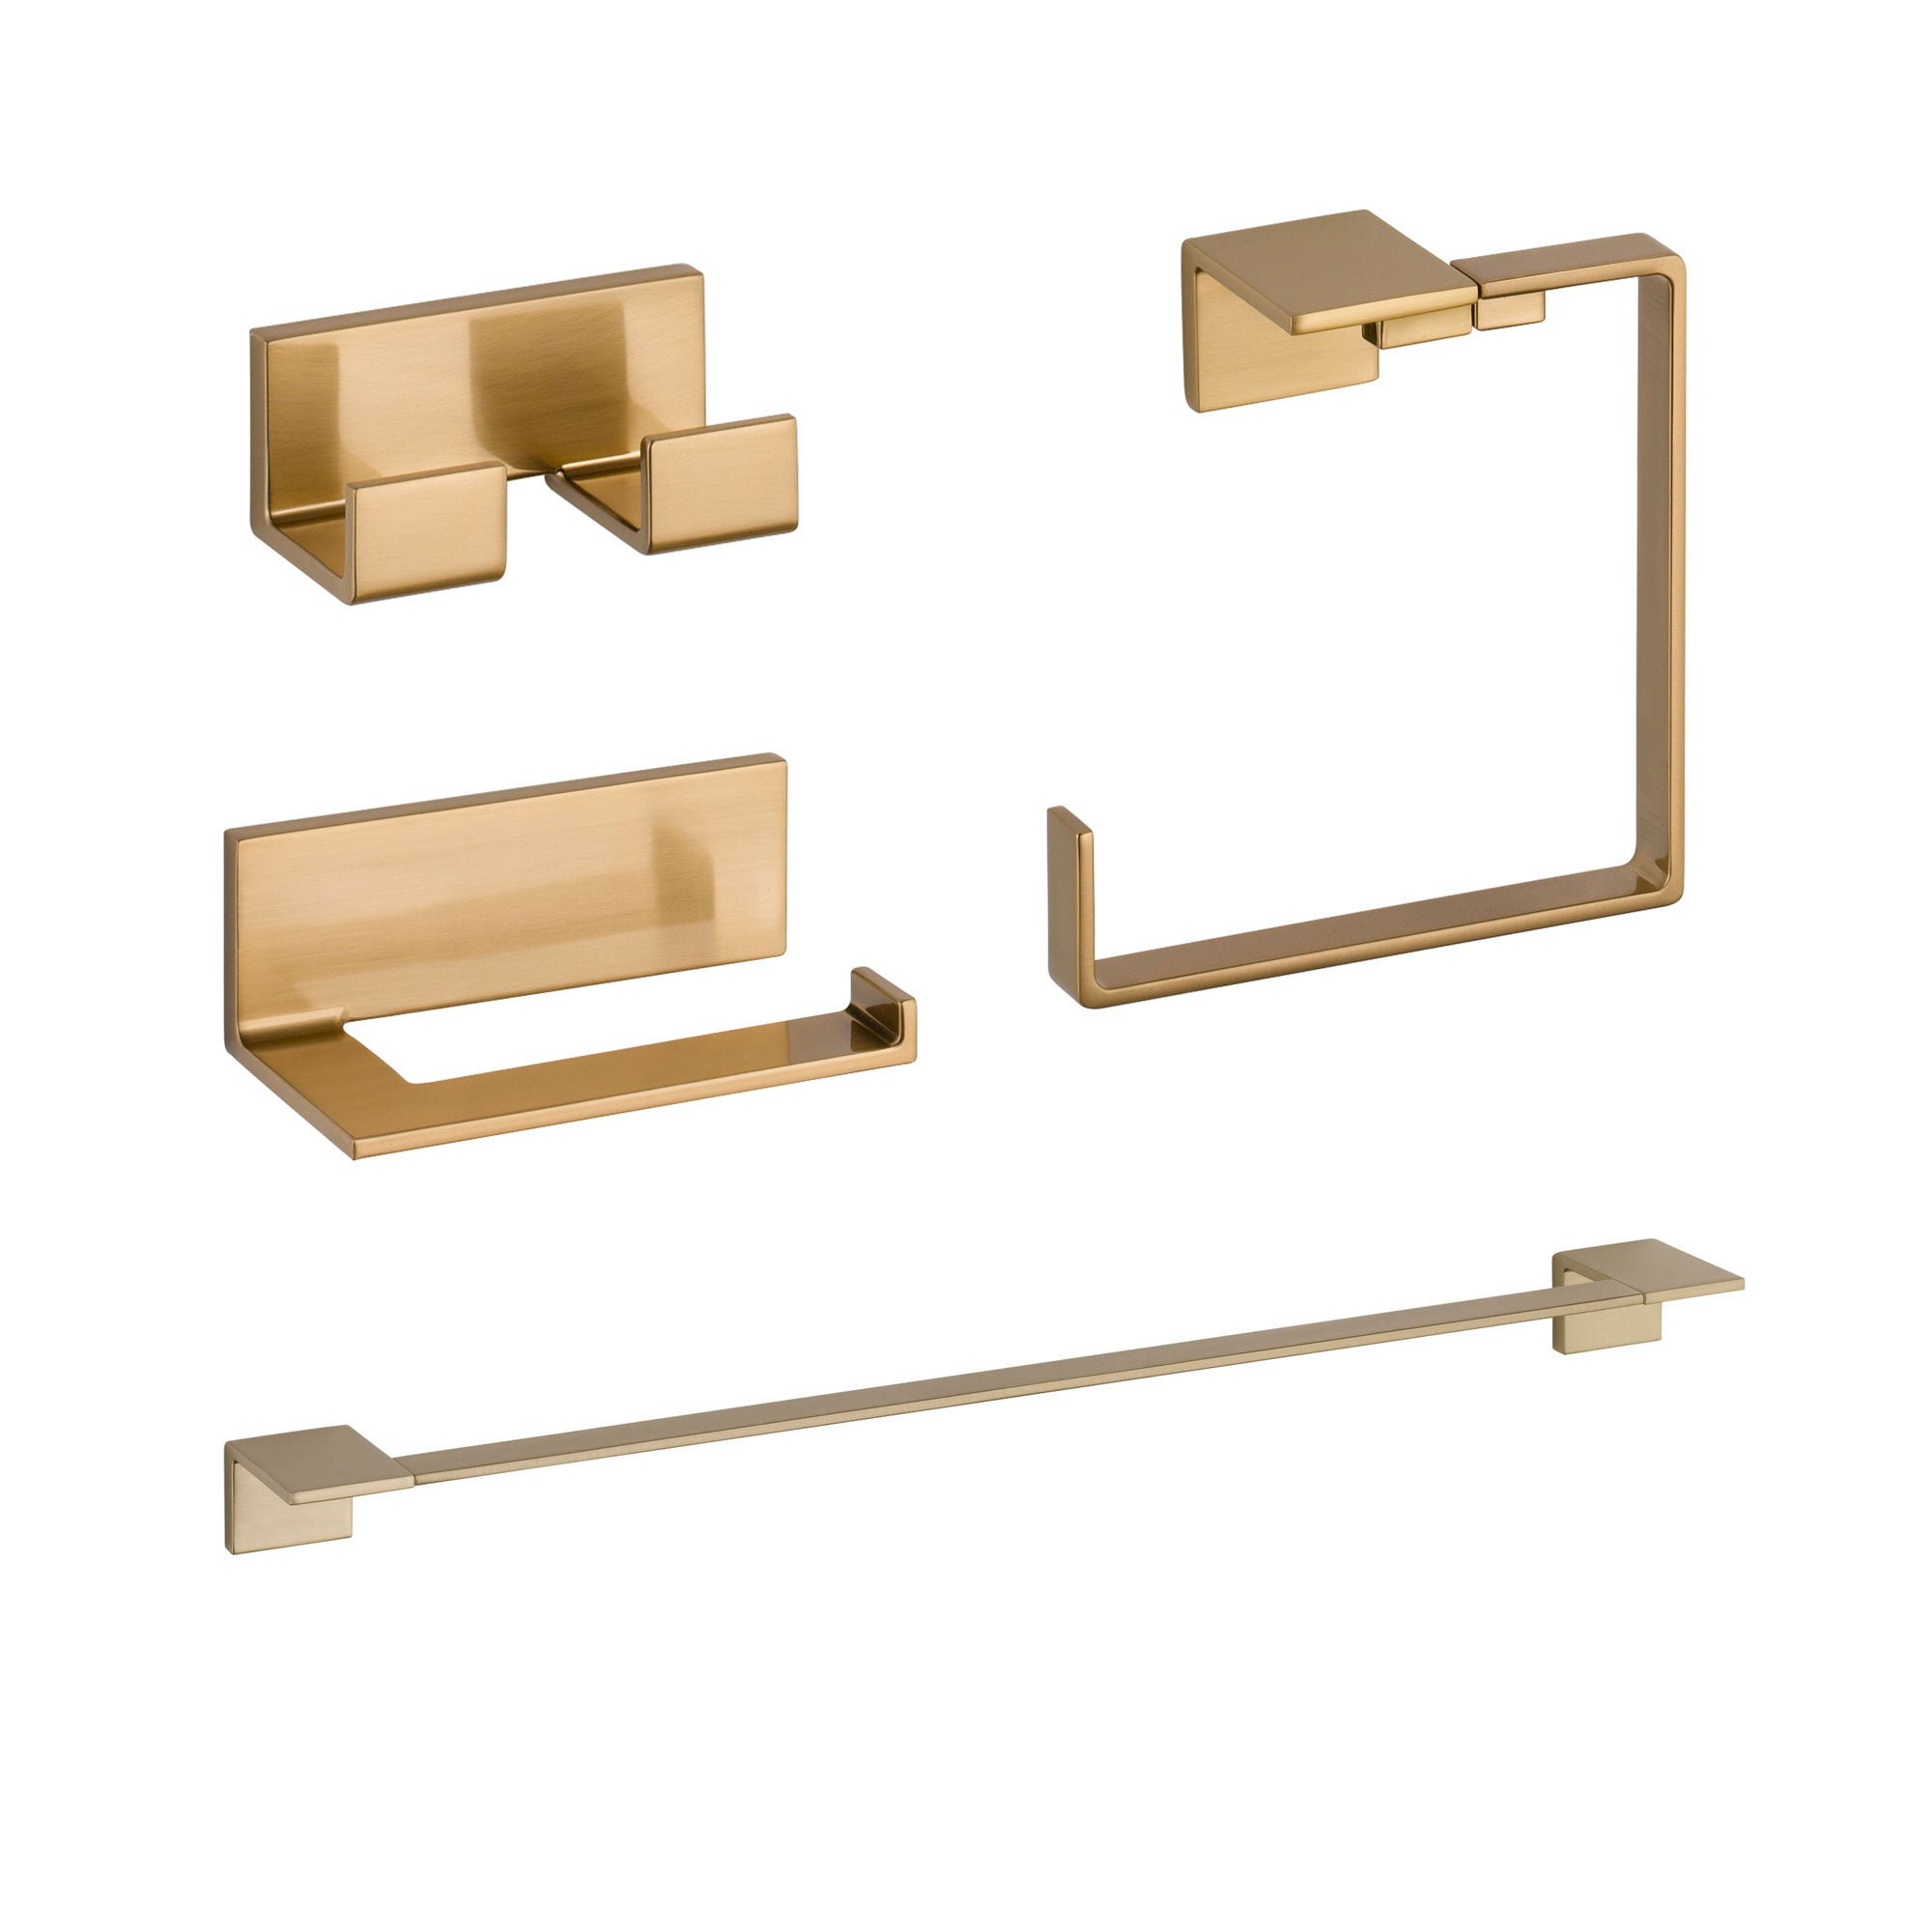 "Delta Vero Champagne Bronze STANDARD Bathroom Accessory Set Includes: 24"" Towel Bar, Toilet Paper Holder, Double Robe Hook, and Towel Ring D10061AP"